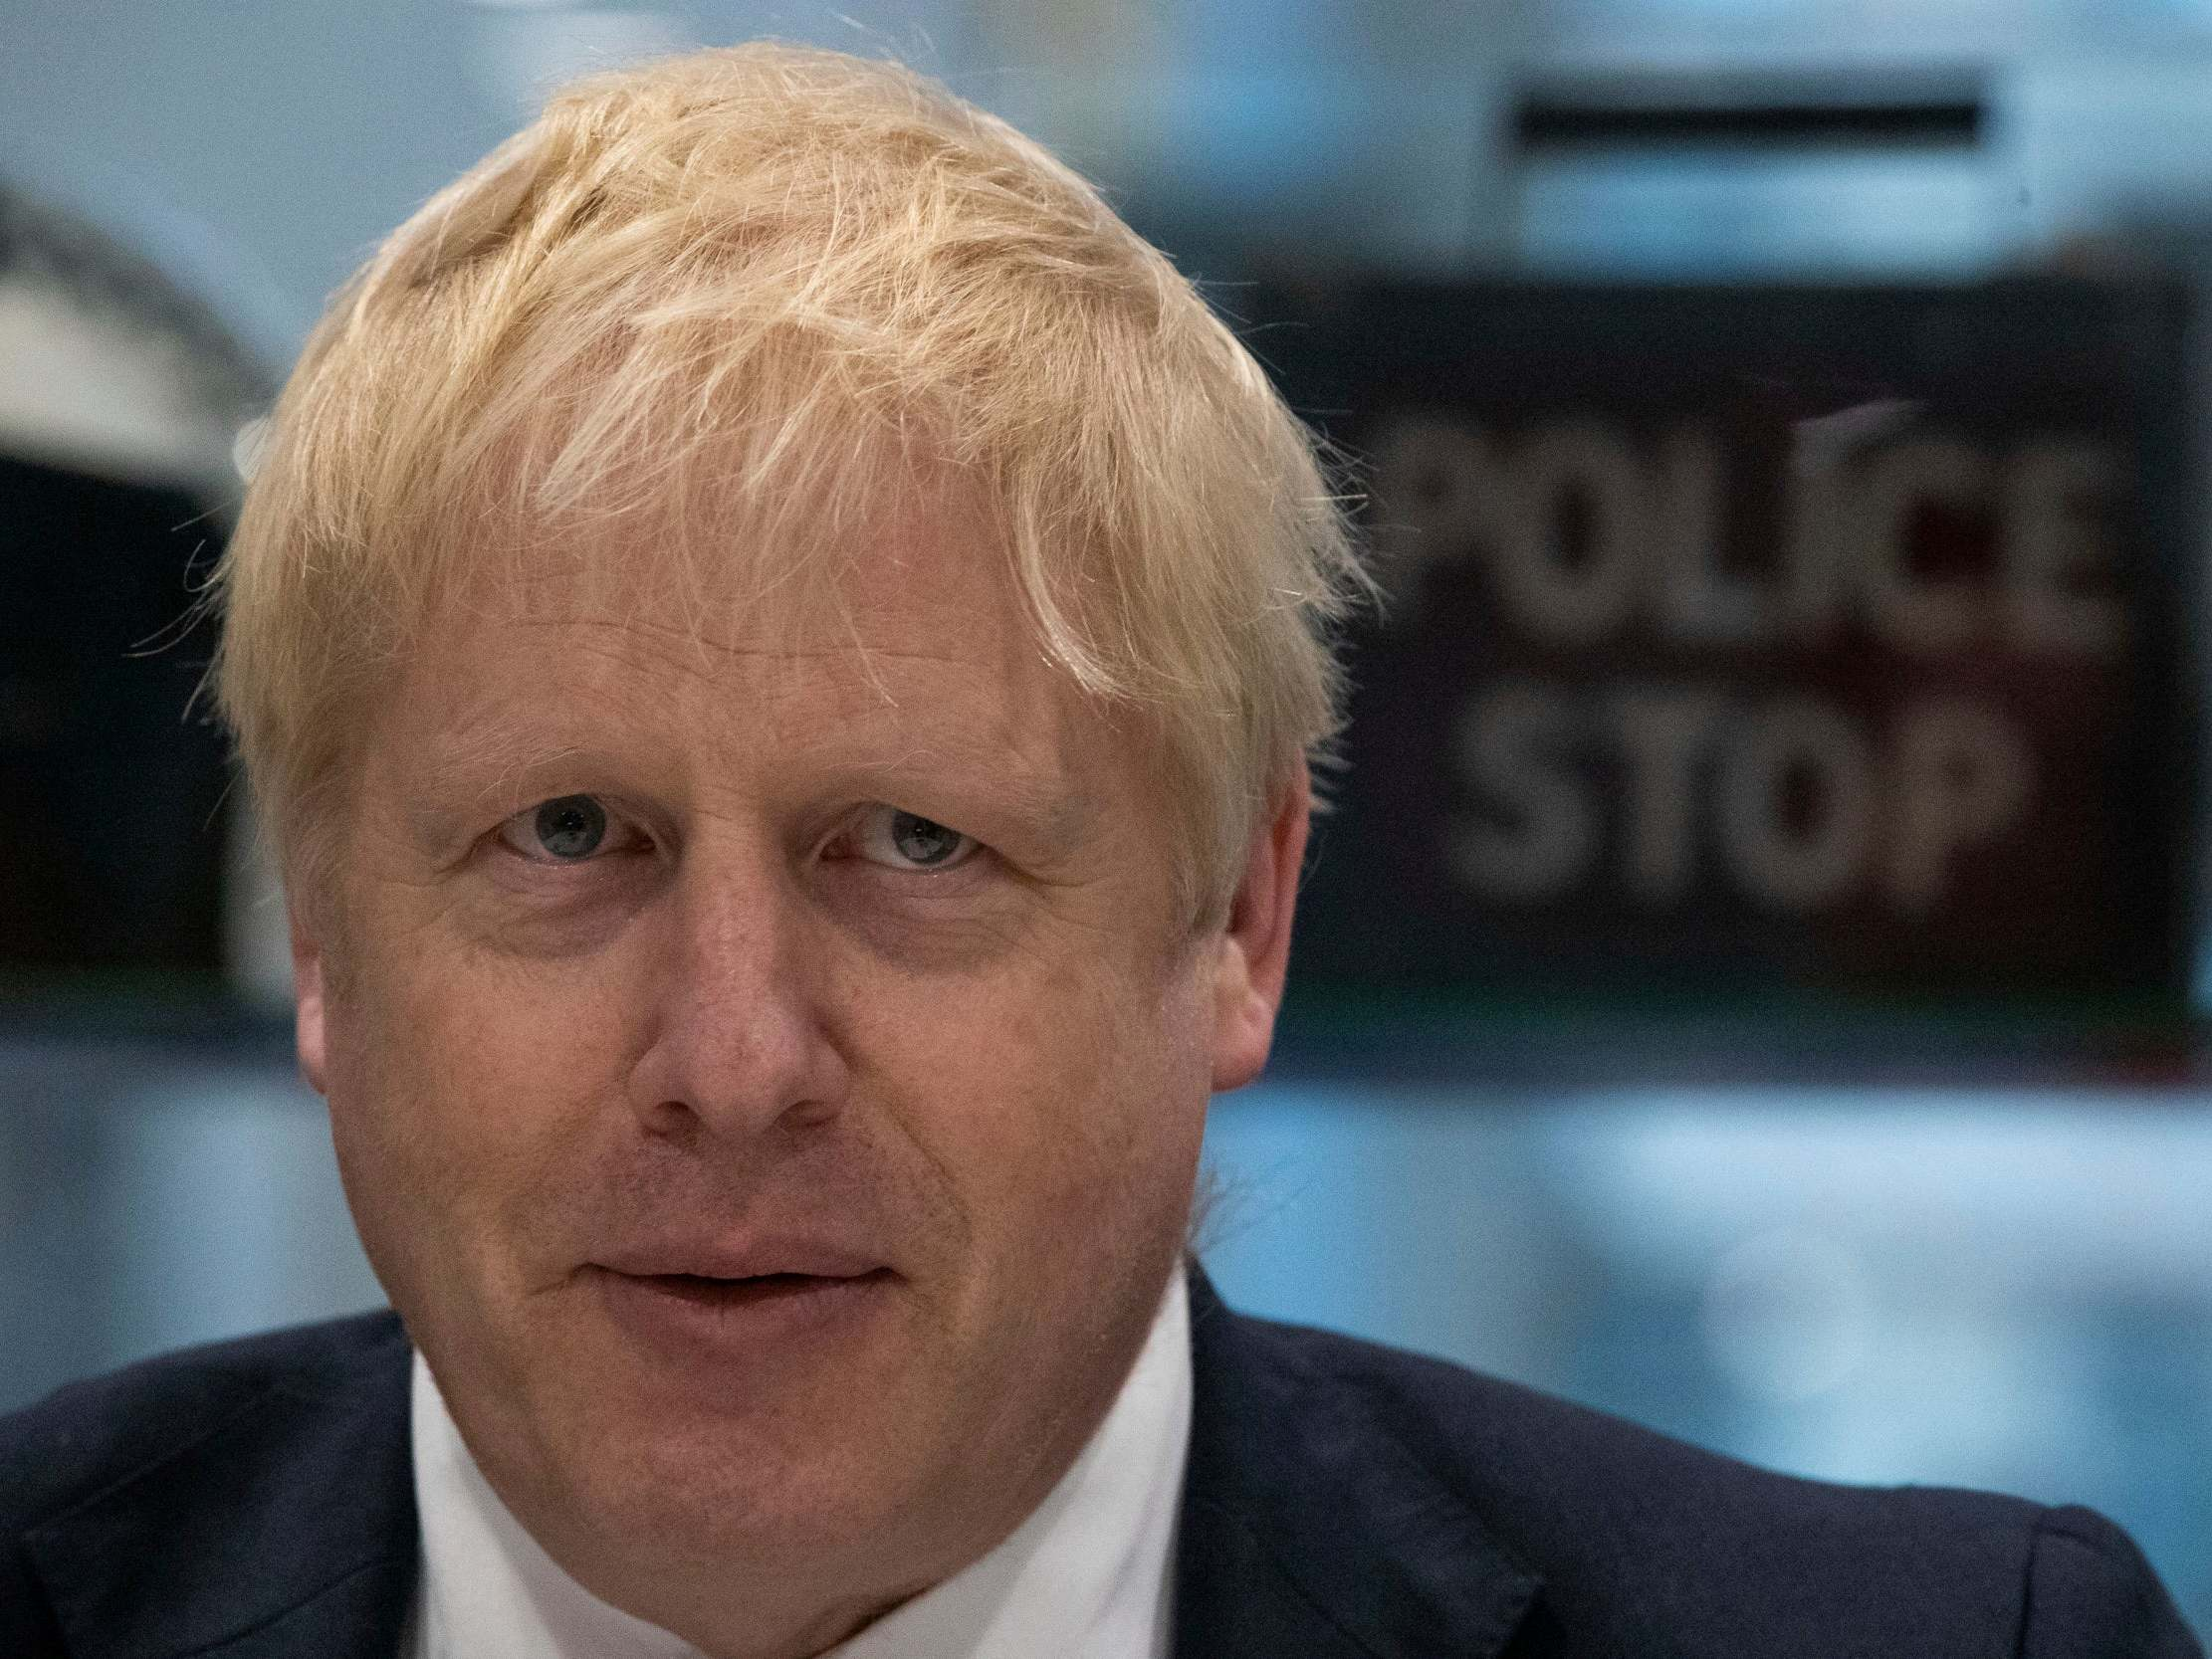 Boris Johnson news – live: Government accused of 'whopping untruths' over withheld Russian hacking report by former attorney general as PM faces Brexit Party battle